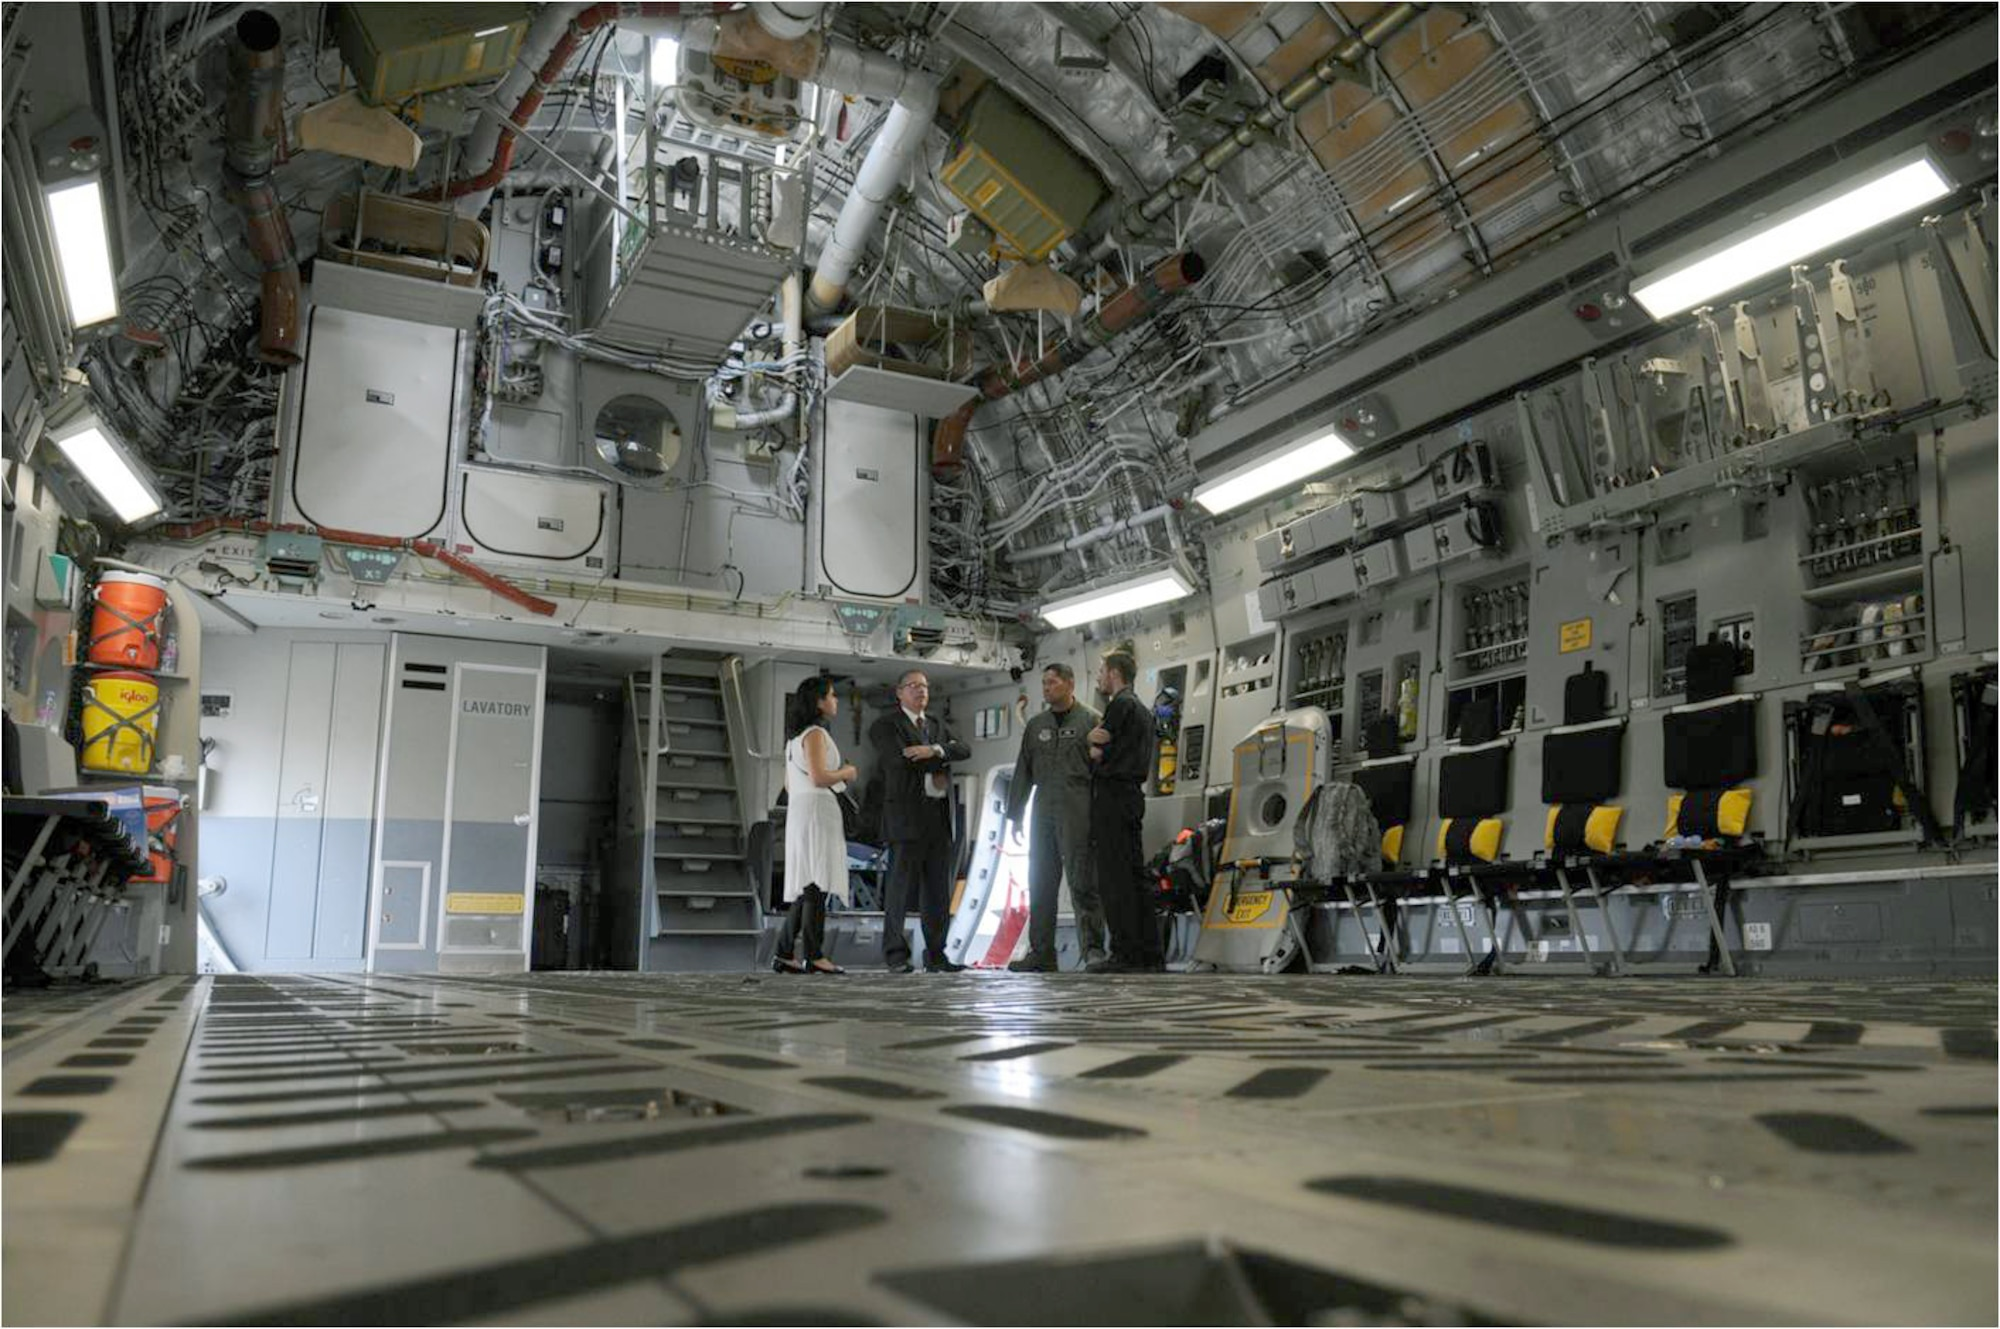 Spectators tour the cargo bay of a C-17 Globemaster III from Travis Air Force Base, Calif., July 20, 2010, in Farnborough, England. Eleven U.S. military aircraft and approximately 70 personnel representing all branches of service participate in the 2010 Farnborough International Air Show. (U.S. Air Force photo/Staff Sgt. Jerry Fleshman)